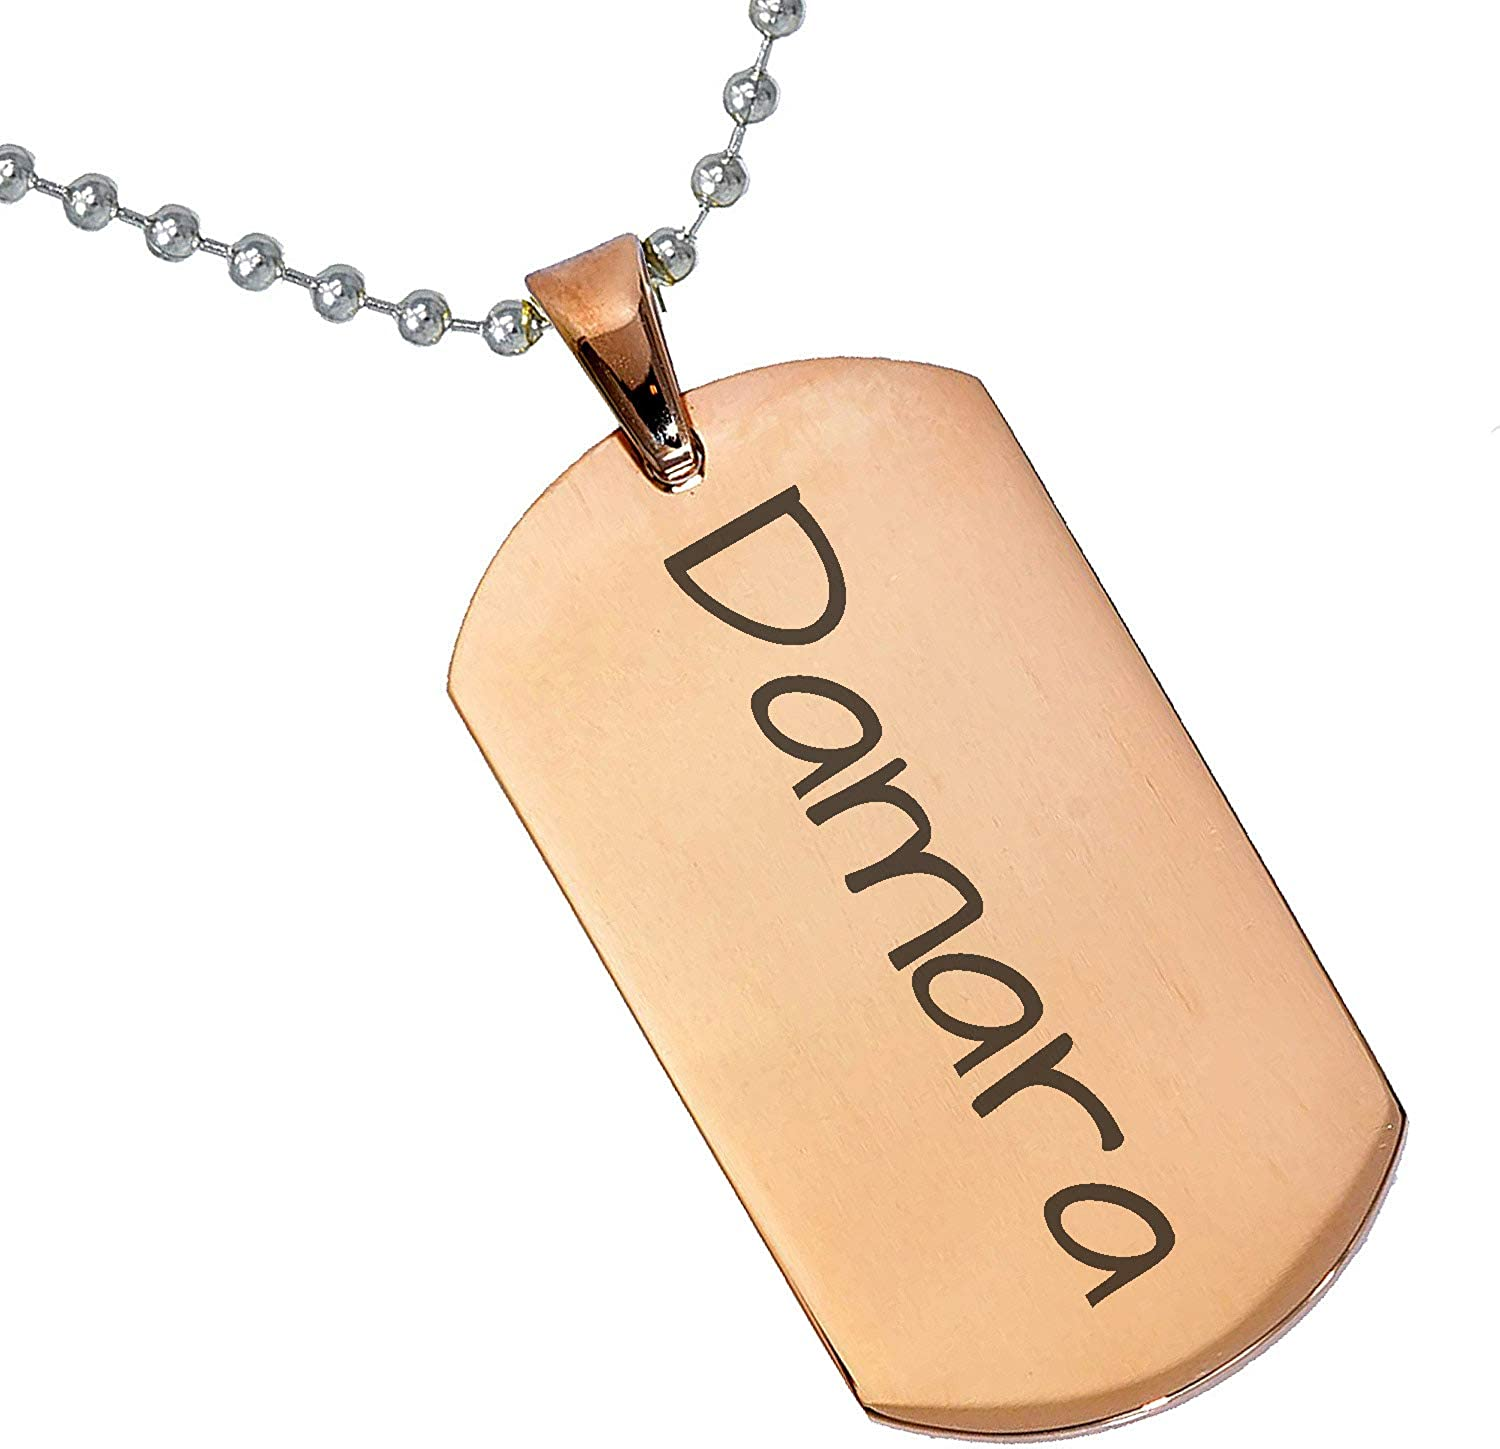 Stainless Steel Silver Gold Black Rose Gold Color Baby Name Damara Engraved Personalized Gifts For Son Daughter Boyfriend Girlfriend Initial Customizable Pendant Necklace Dog Tags 24 Ball Chain